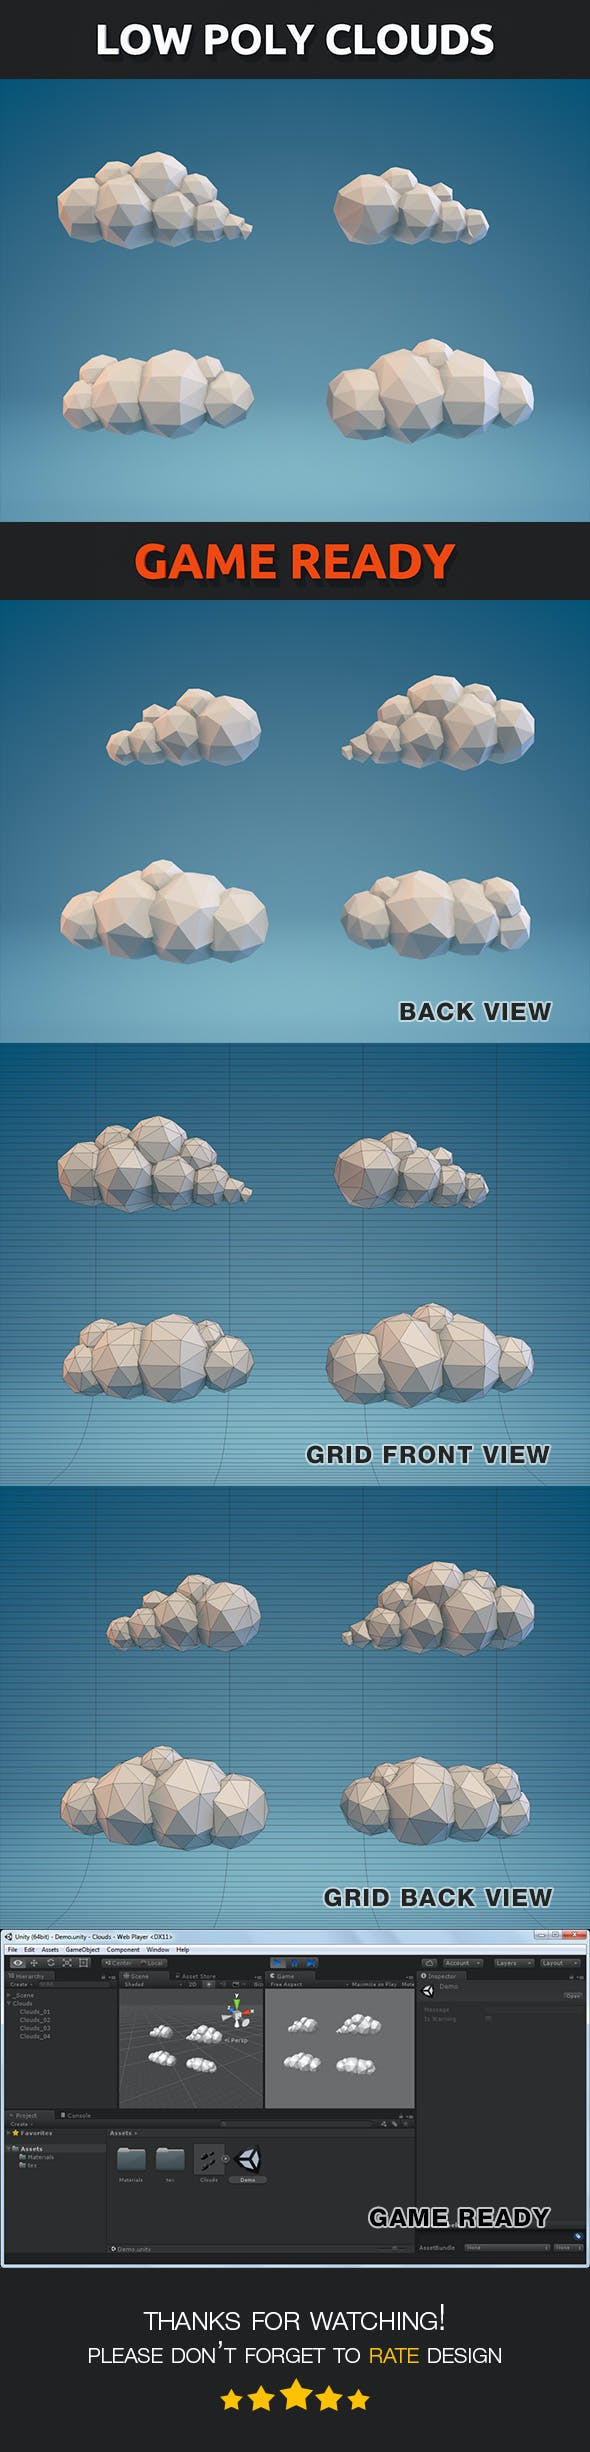 Low Poly Clouds Part 01 - 3DOcean Item for Sale